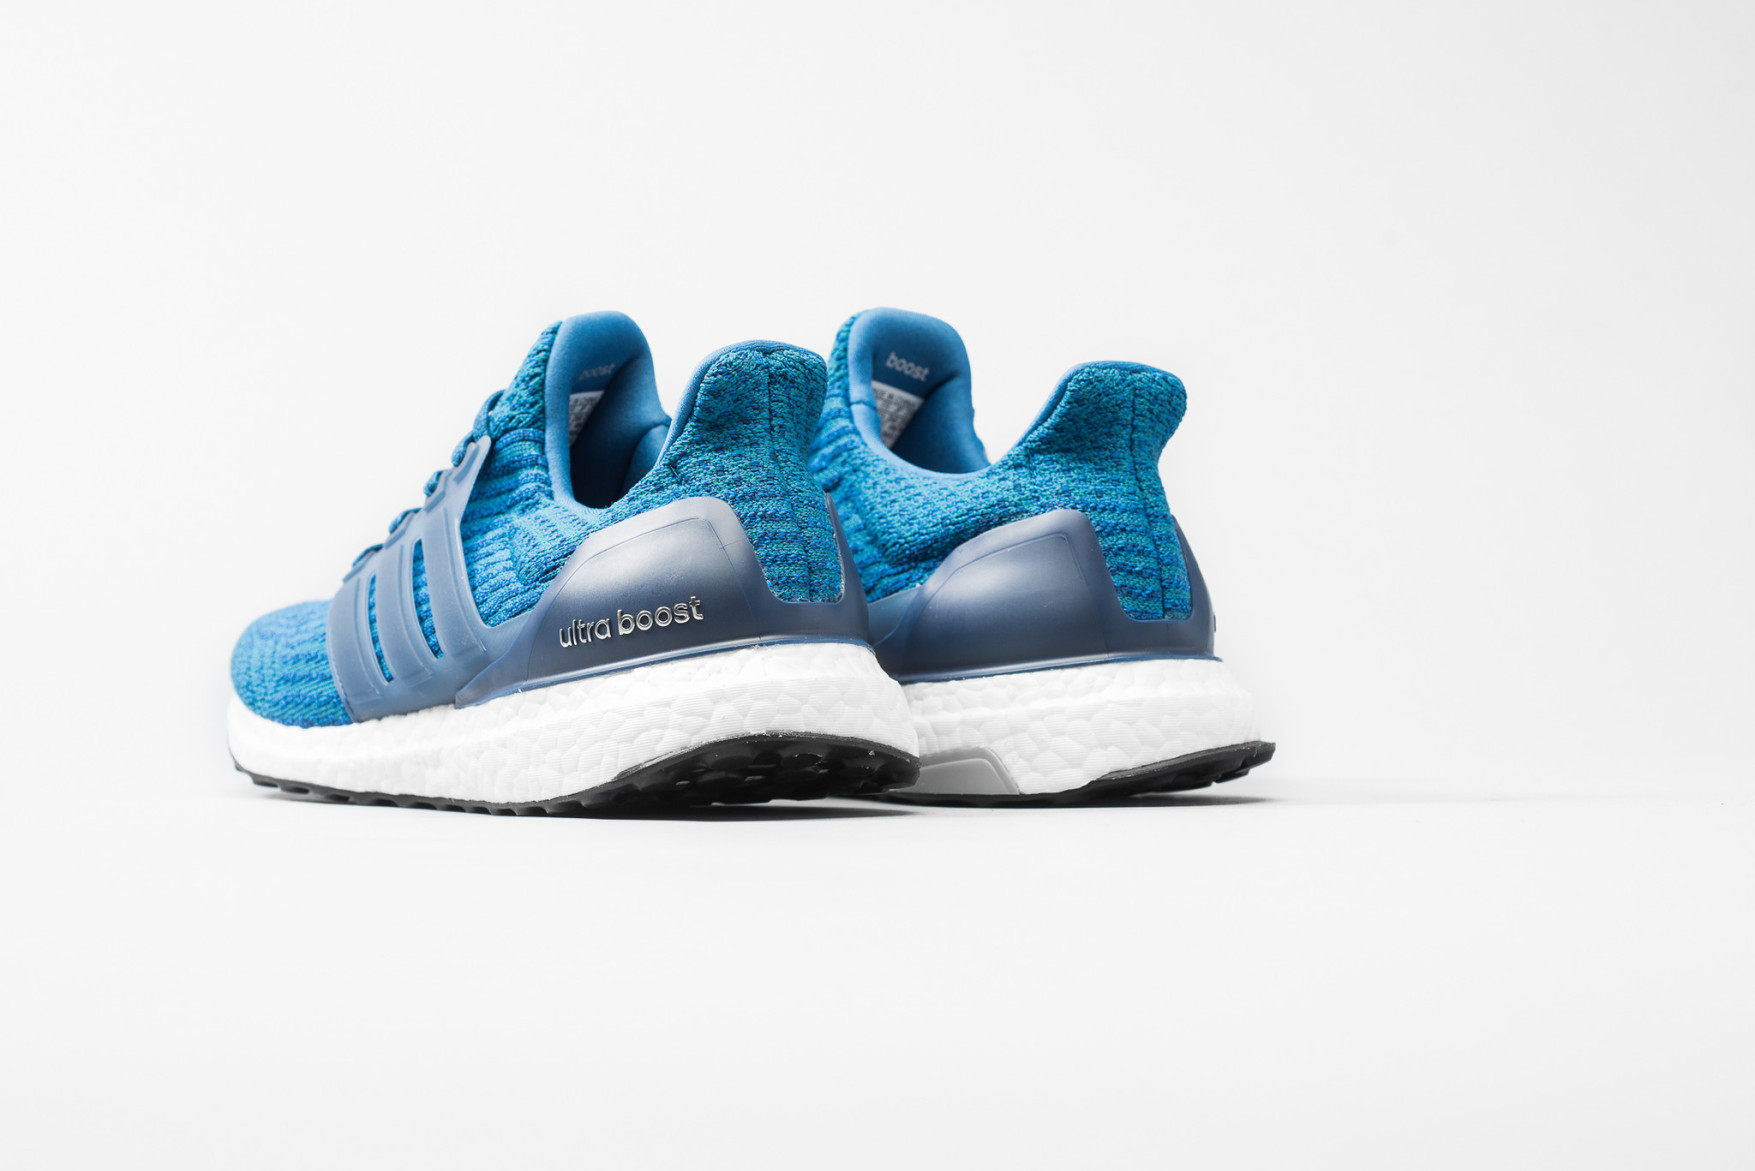 adidas UltraBOOST Royal Blue/White - 1835387